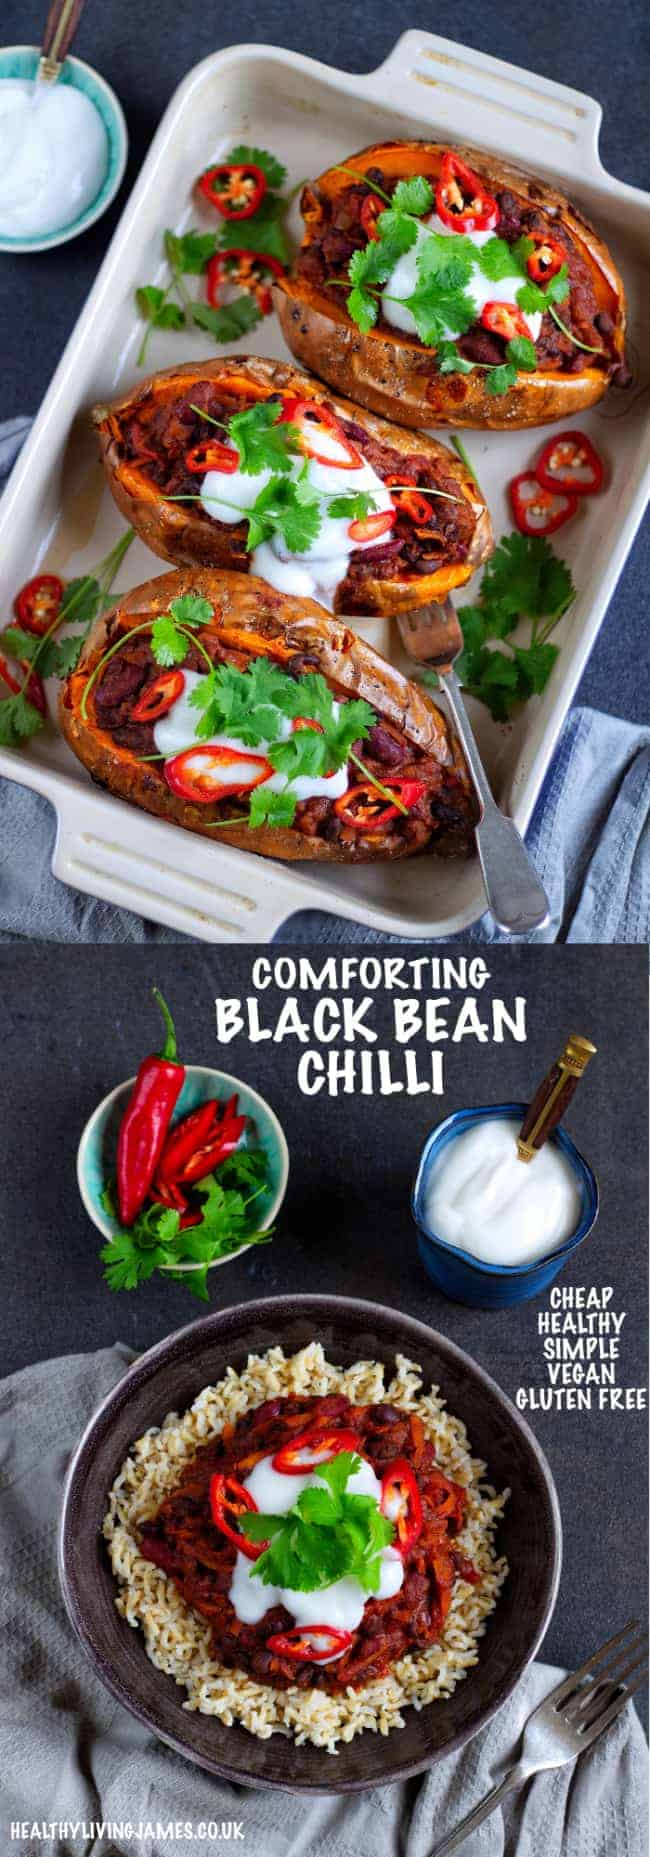 Comforting Black Bean Chilli Pinterest 2 Pinterest